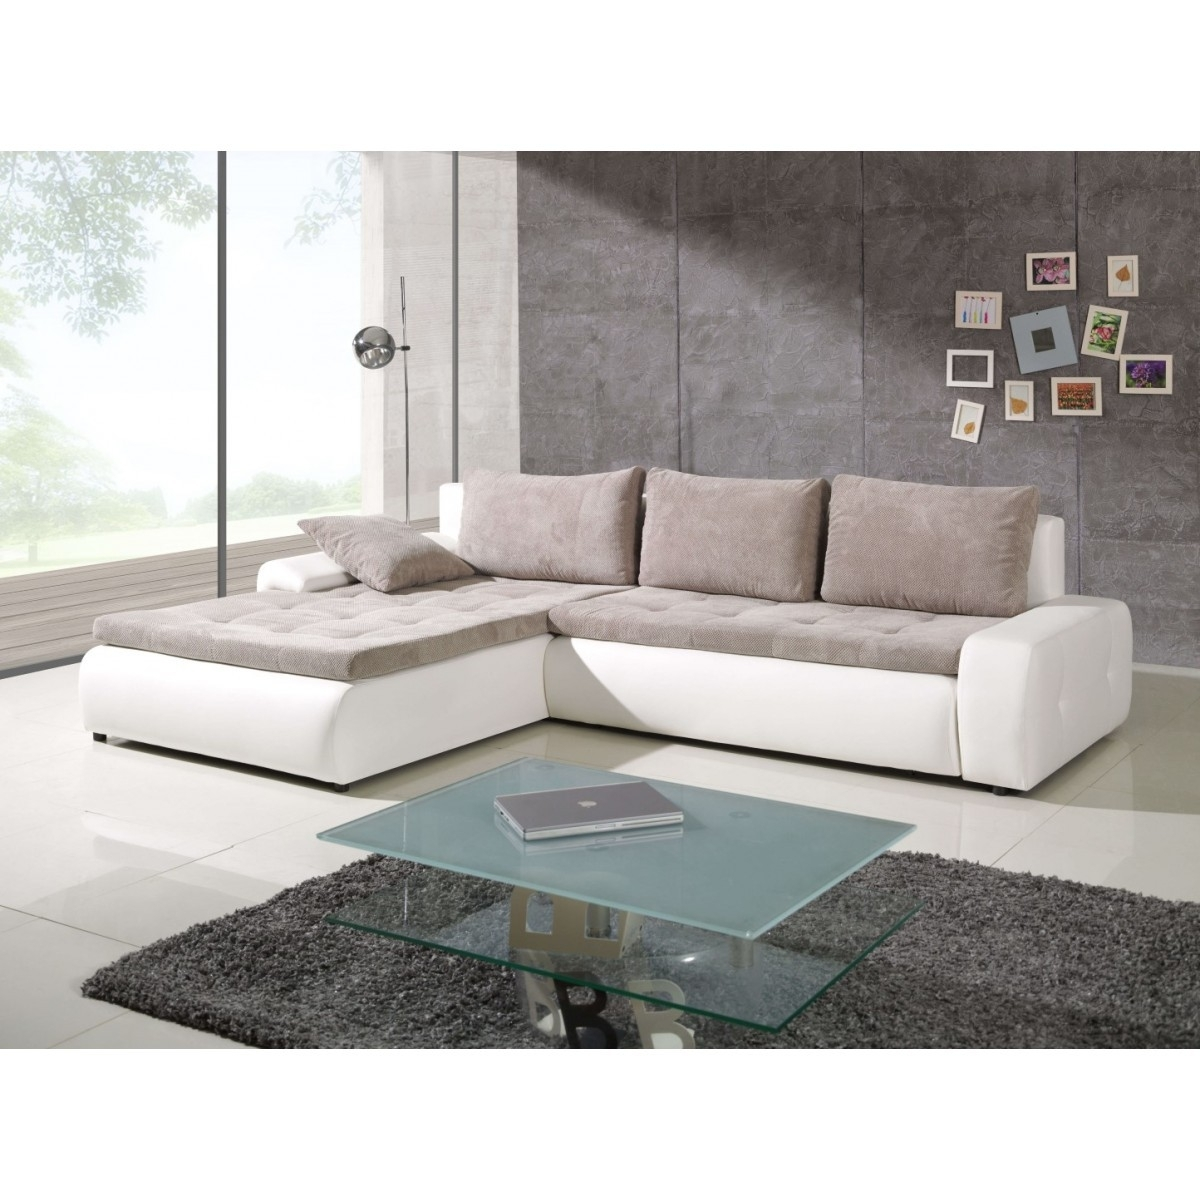 Galileo Universal Sectional Sofa Sleeper With Storagecreative regarding Nashua Nh Sectional Sofas (Image 4 of 10)